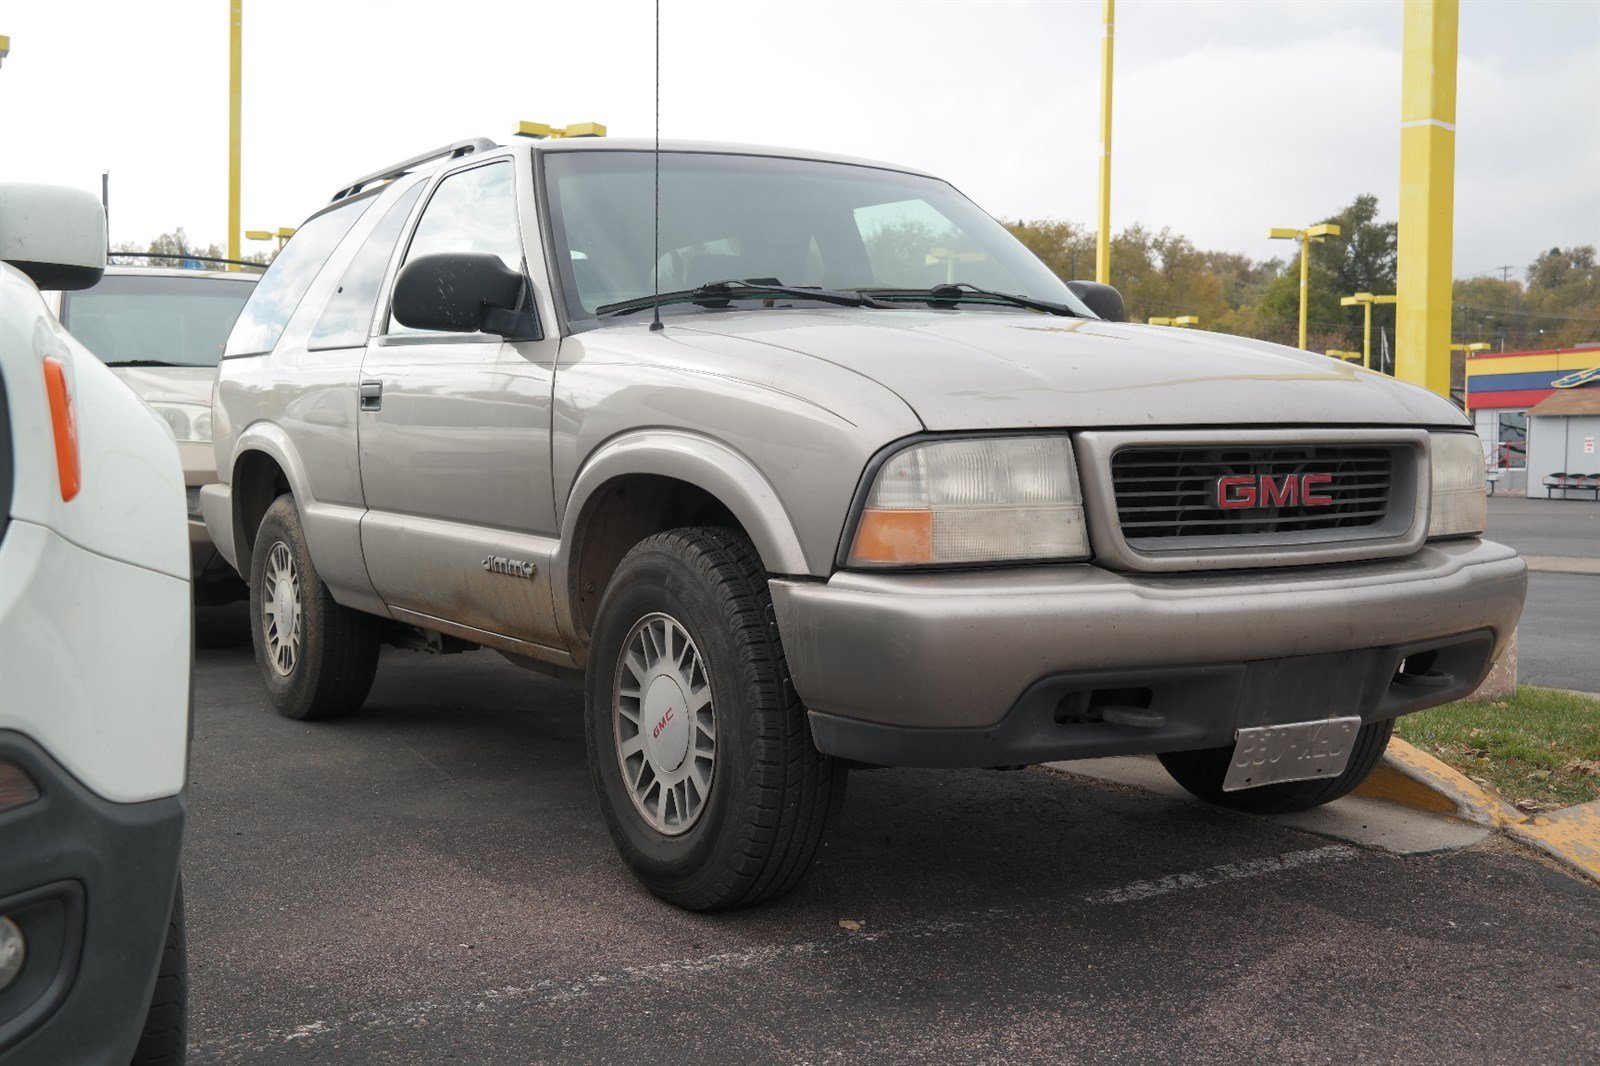 Pre-Owned 2000 GMC Jimmy SLS Base